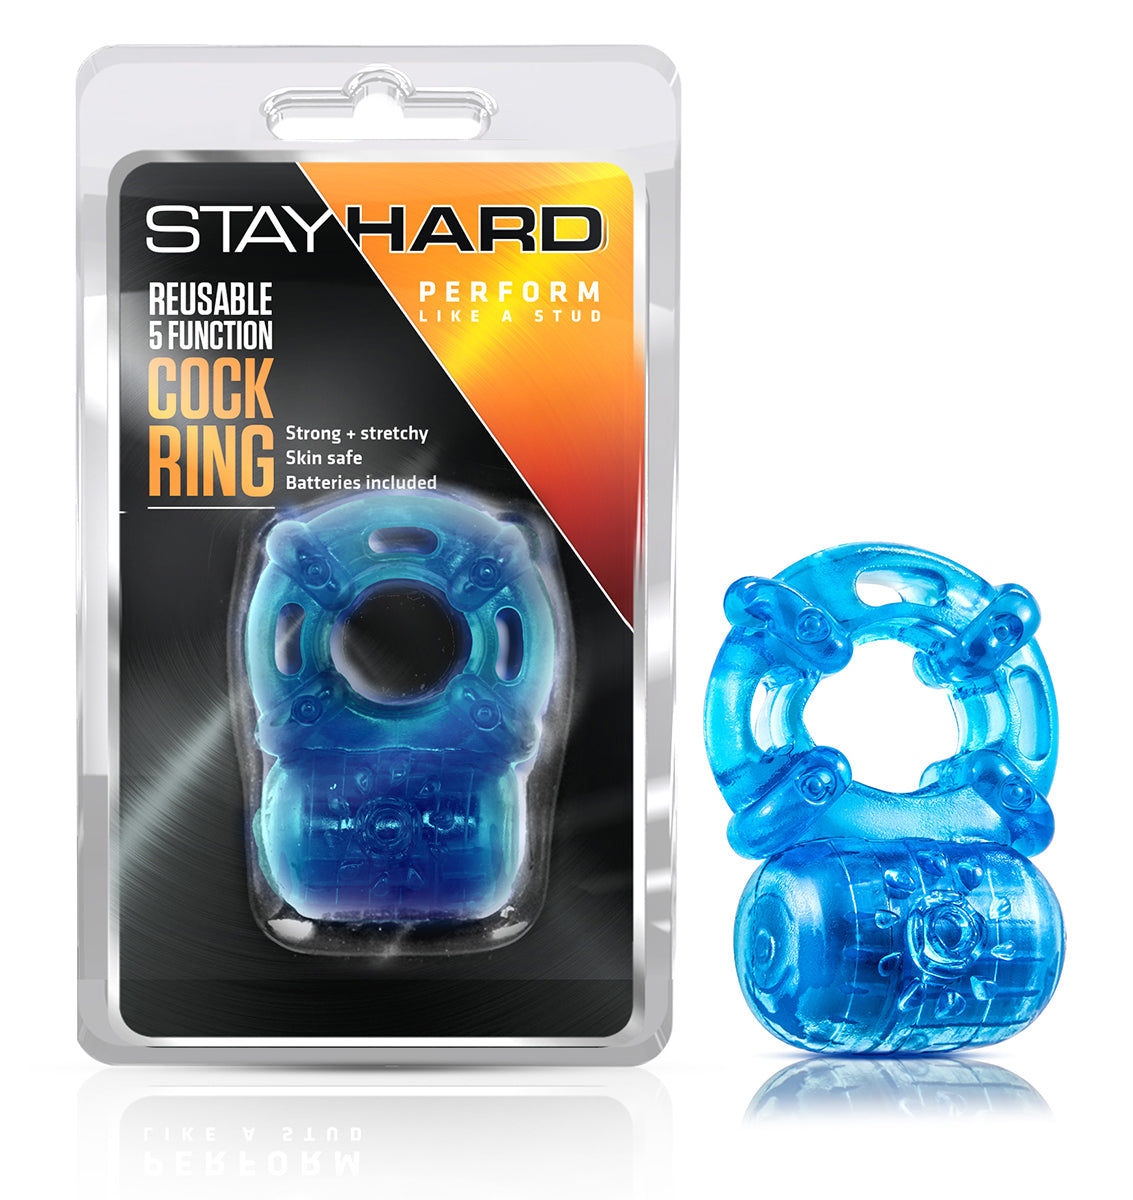 Stay Hard Reusable 5 Function Vibrating Cock Ring - Blue